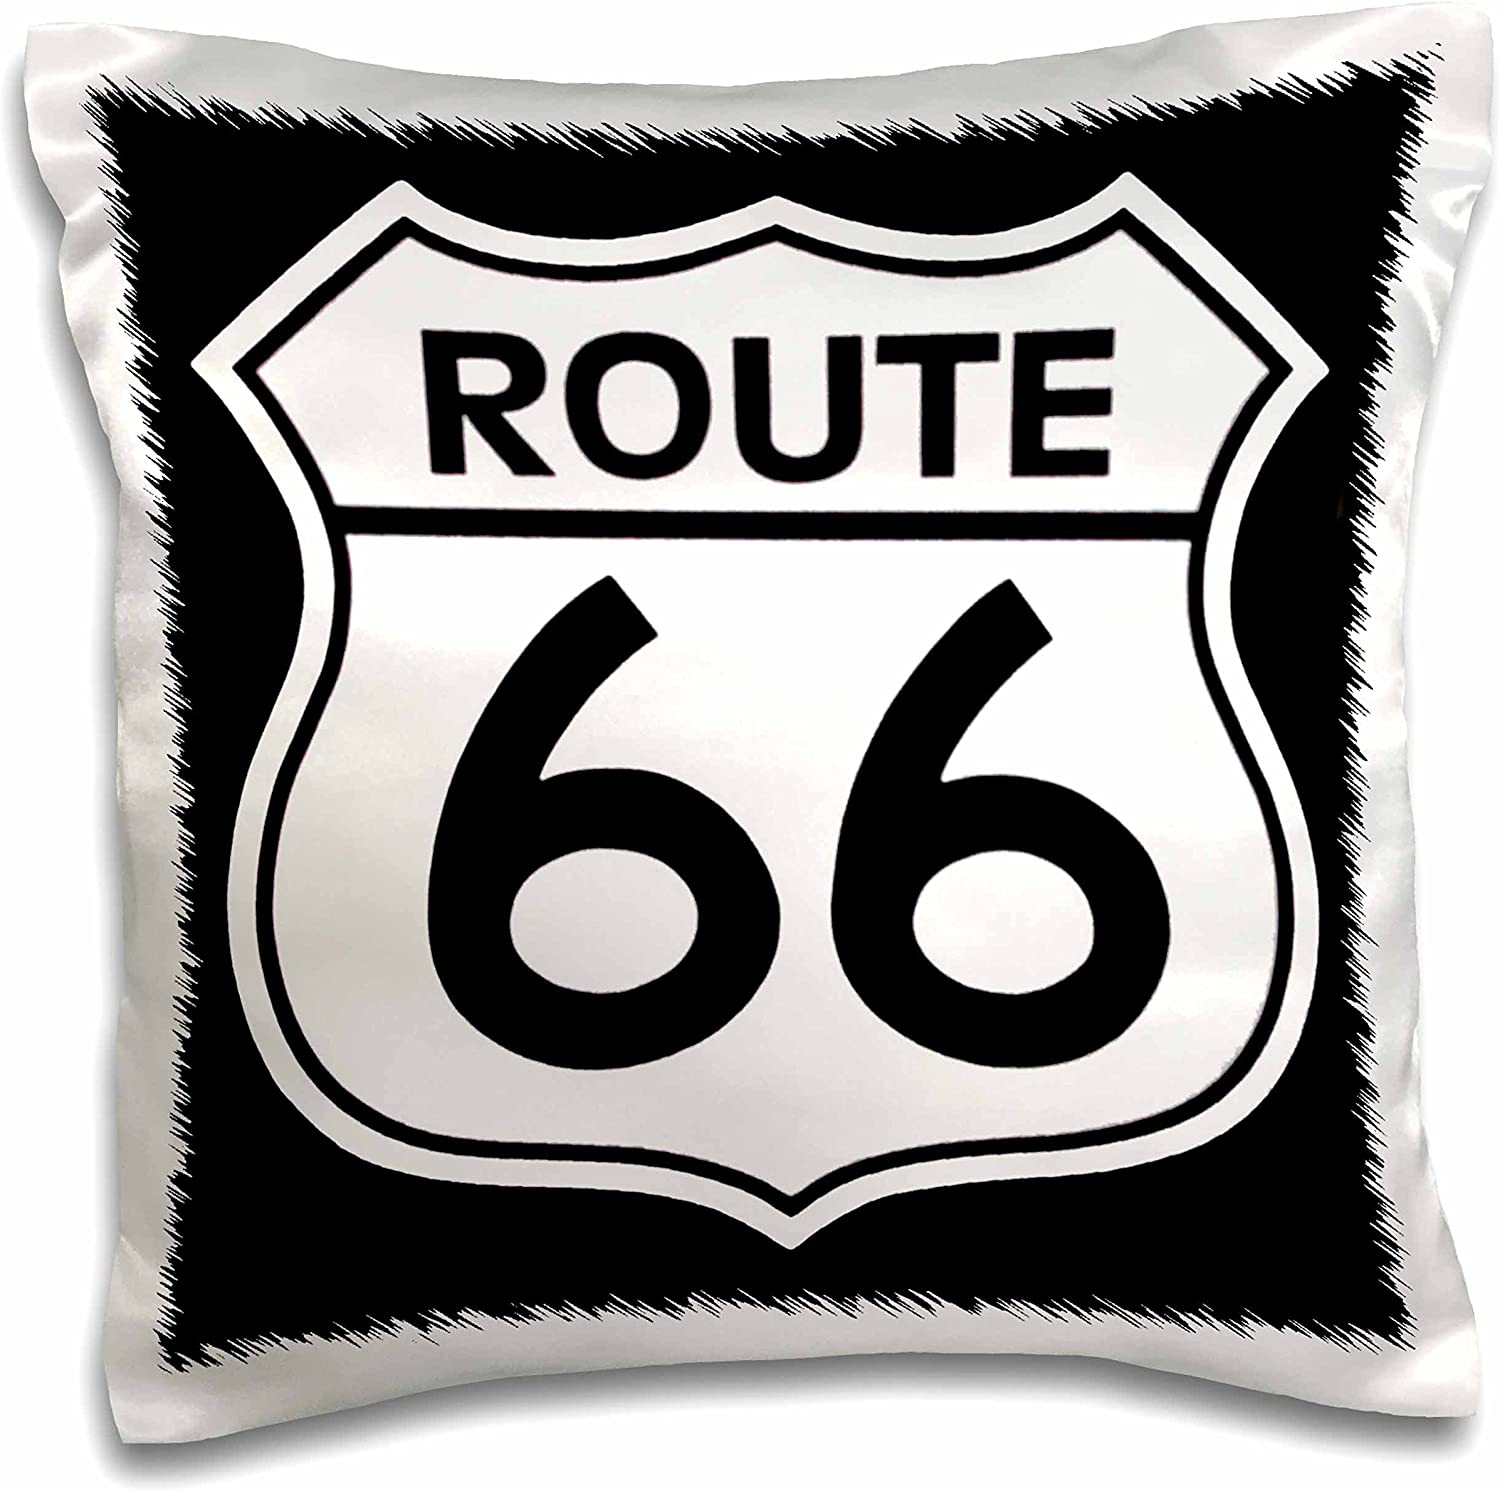 Black and White-Pillow Case 16 by 16 3dRose pc/_110012/_1 Route 66